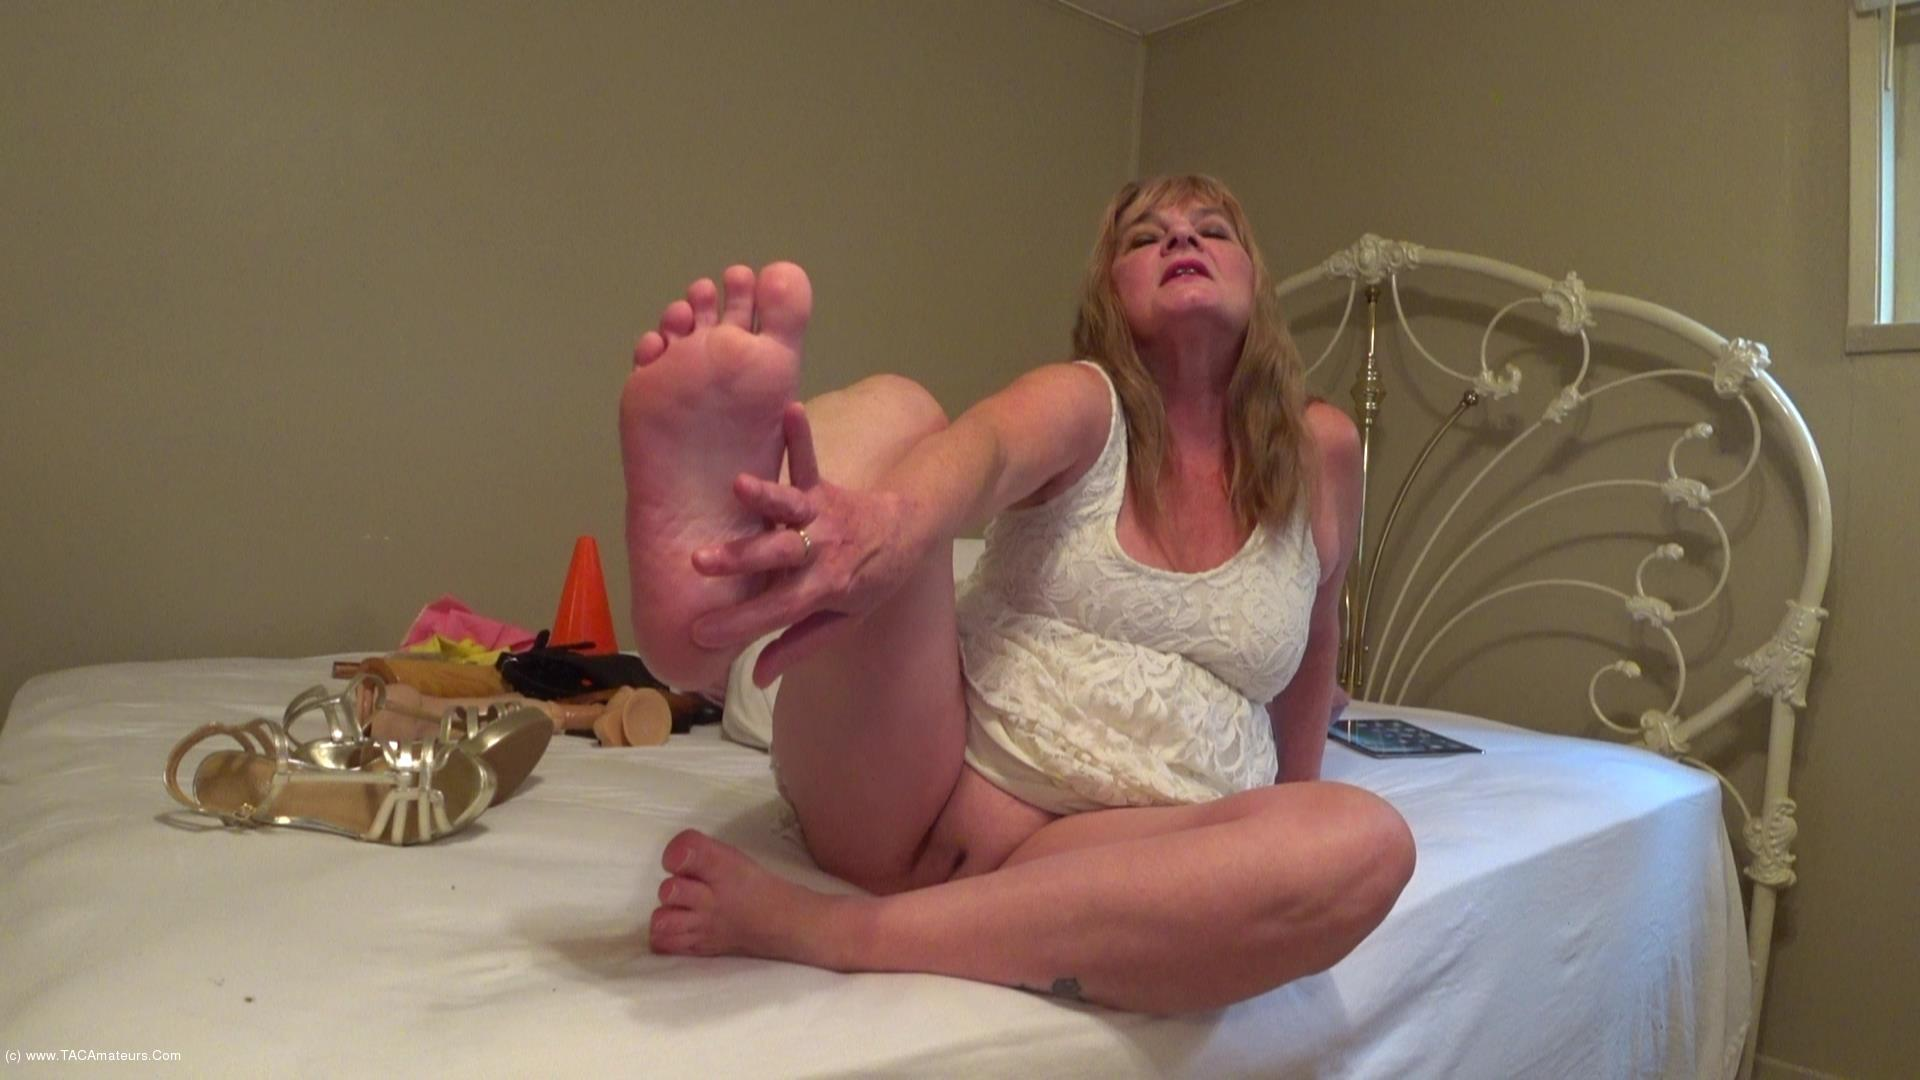 CougarBabeJolee - Barefoot In My Strappy Sandals Cum Worship Pt1 scene 1